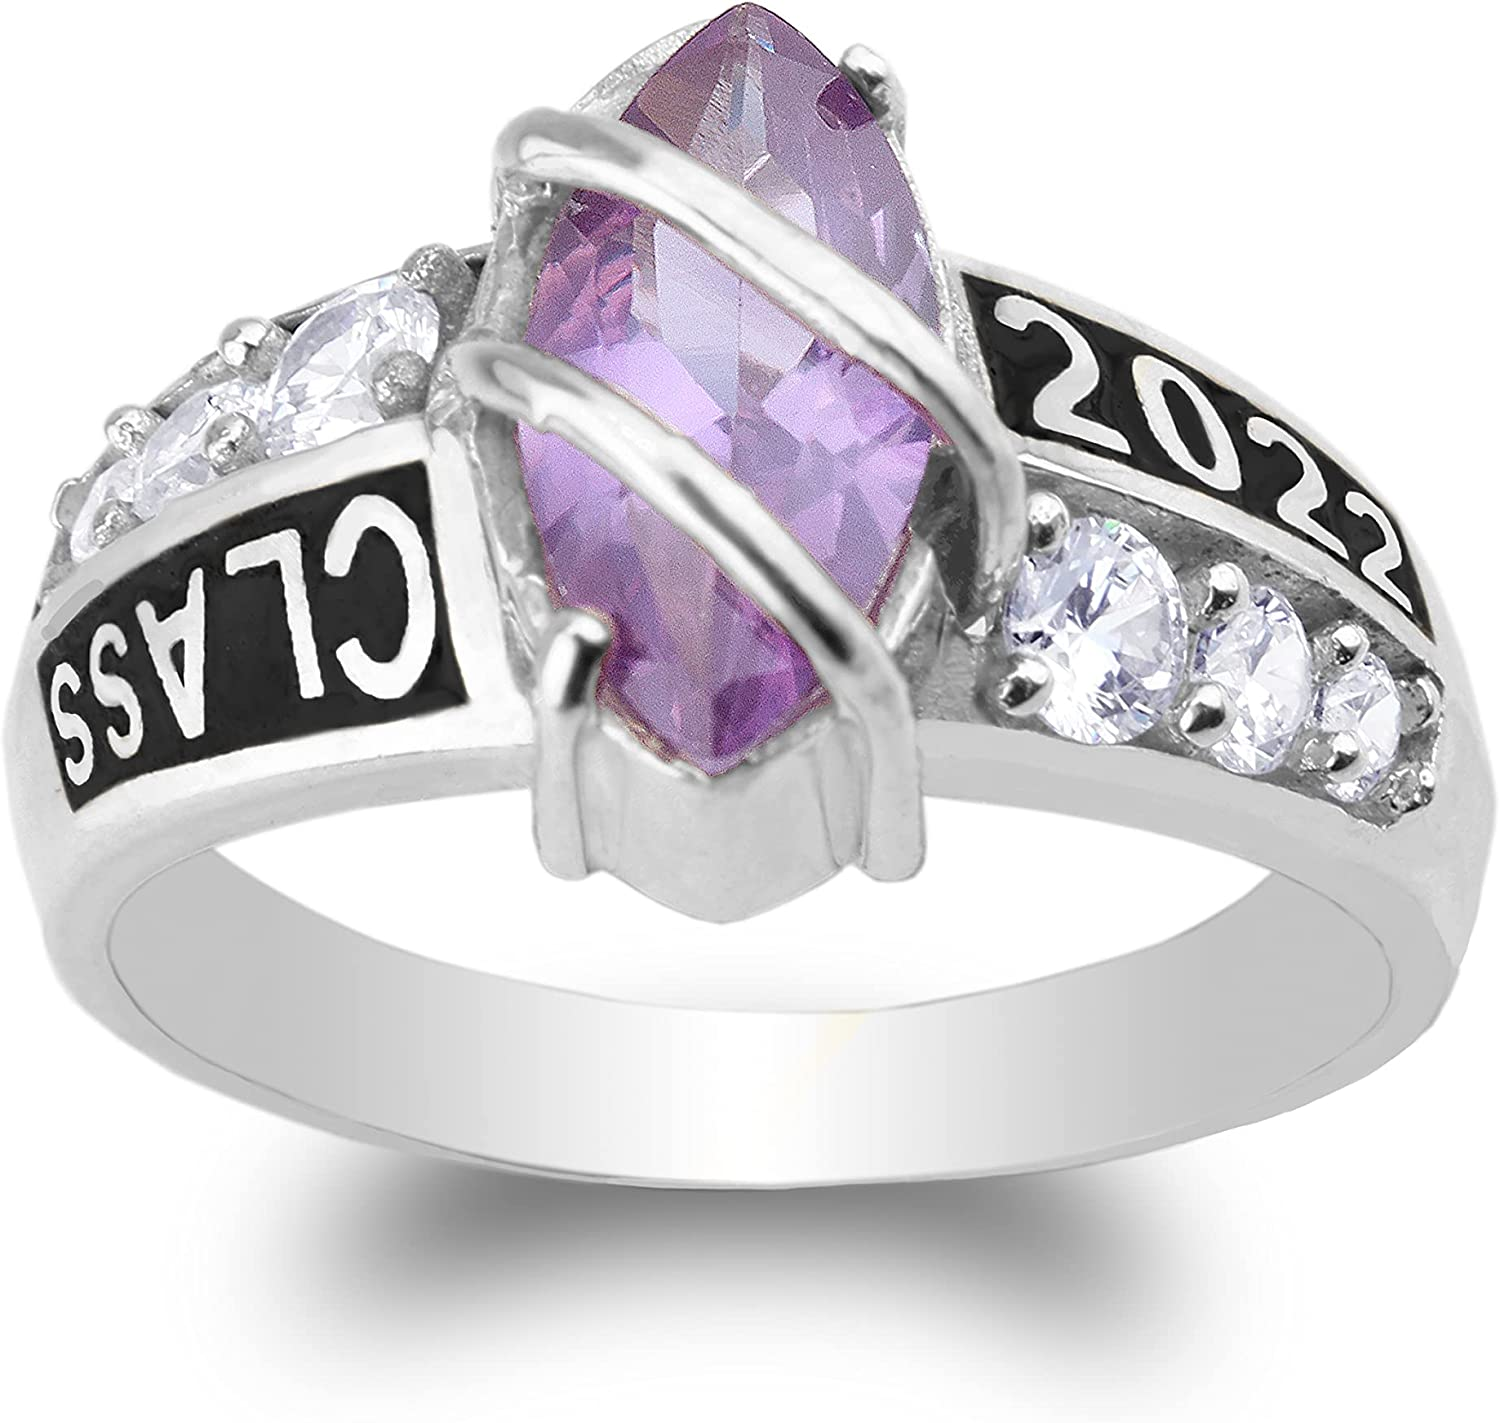 low-pricing JamesJenny 925 Sterling Silver Class of Ring 2022 wit Graduation Very popular